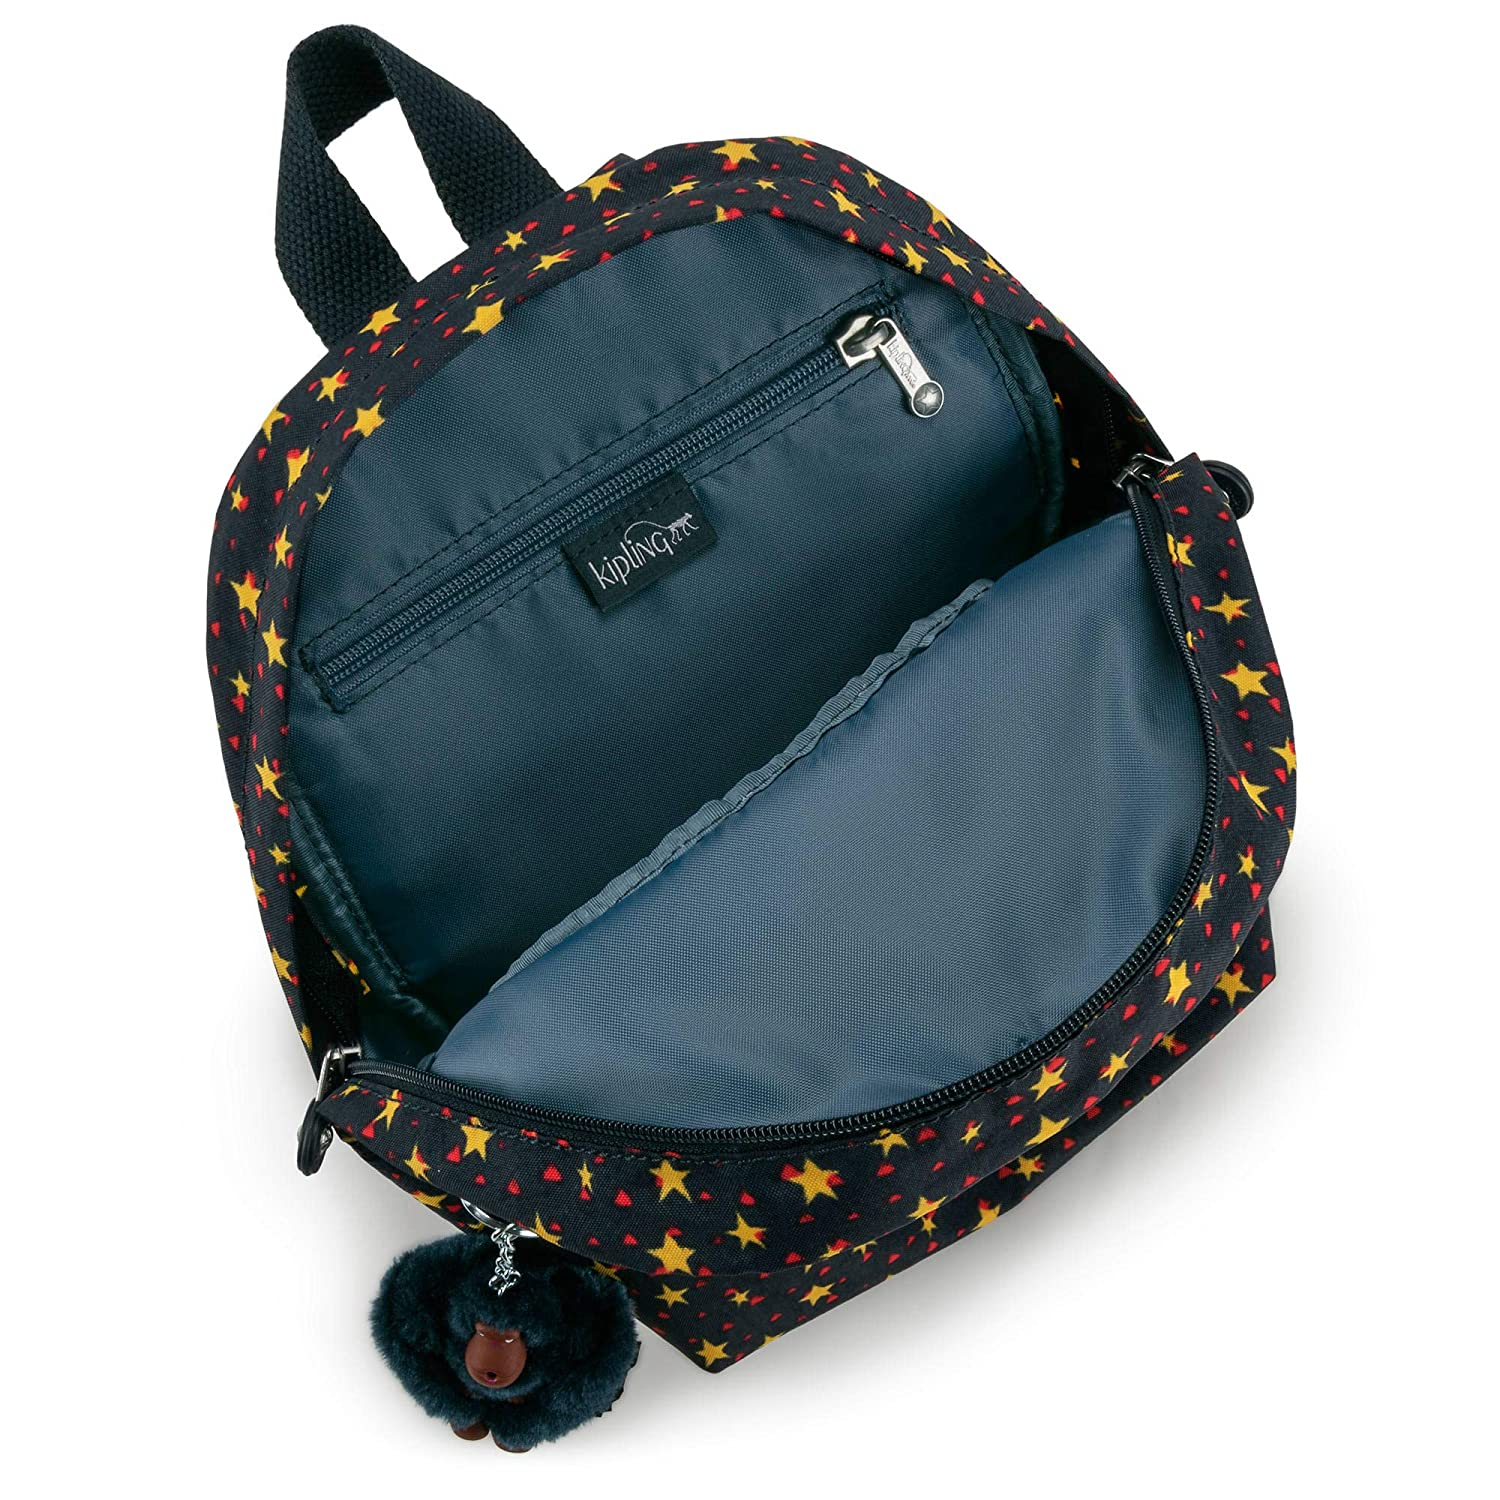 74f3c99afa Amazon.com  Kipling Faster Kids Small Printed Backpack One Size Cool Star  Boy  Shoes